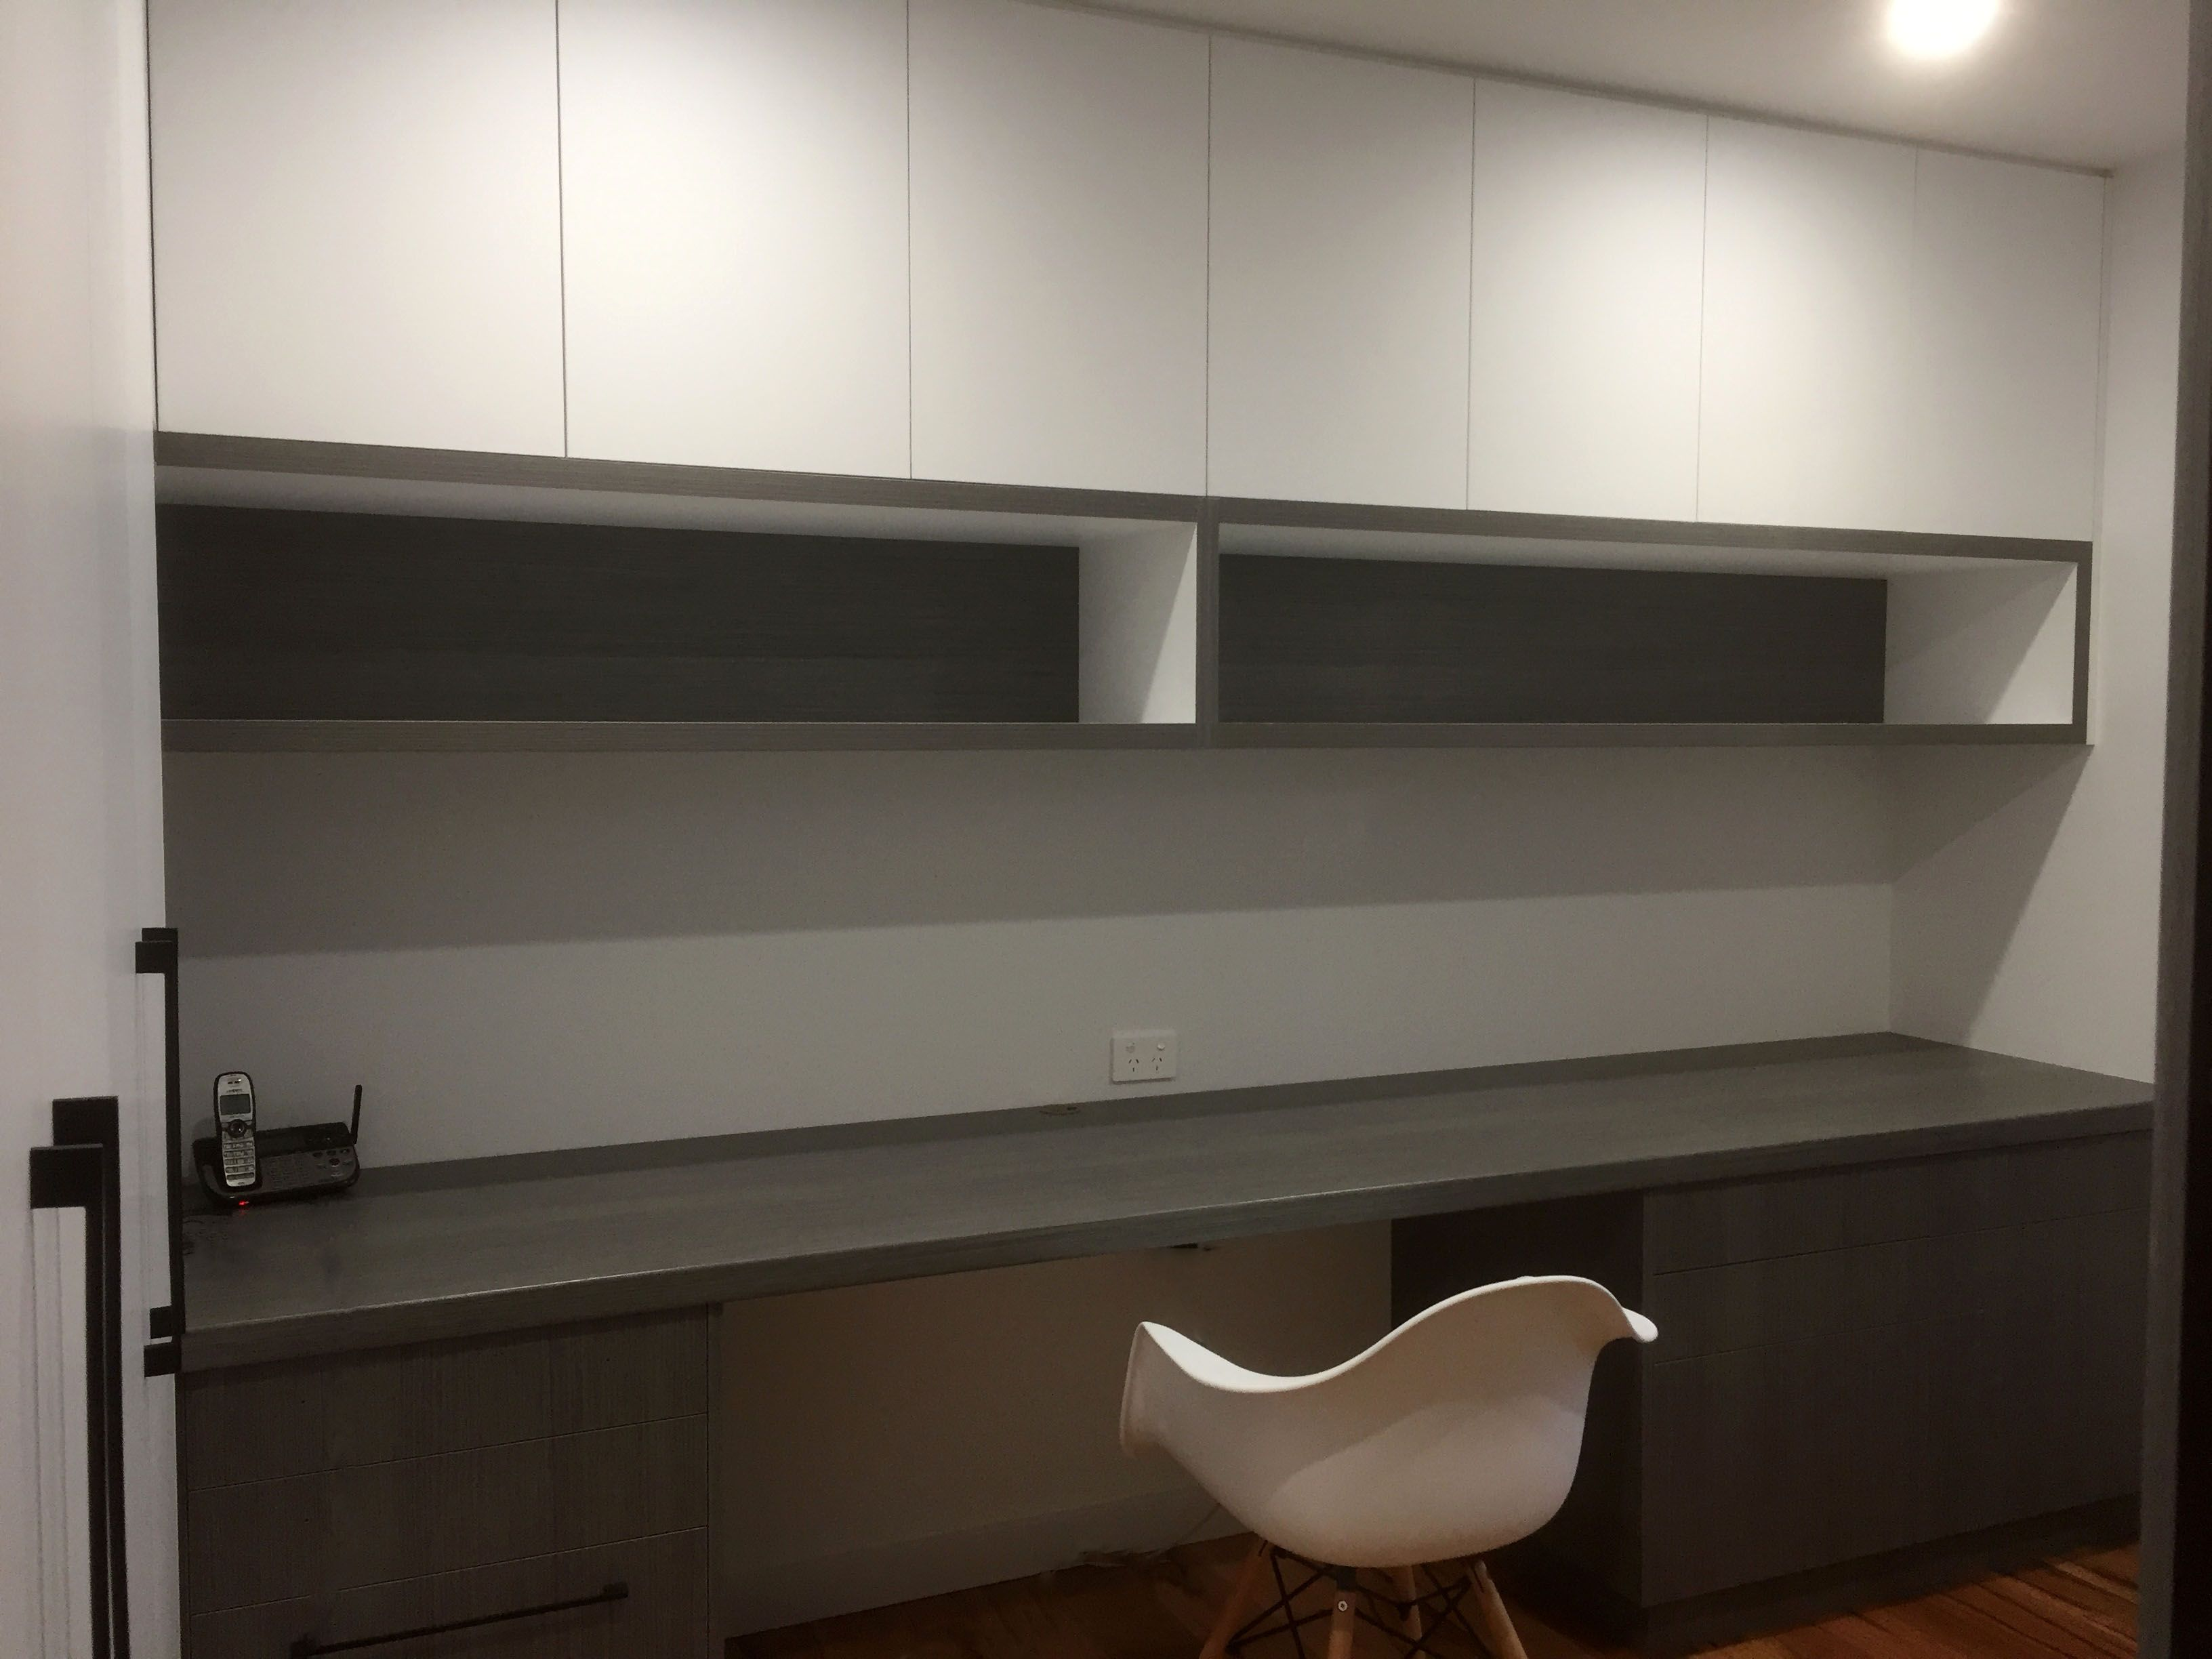 Home Office Study White Cupboards Open Shelves Desk File Drawers Black Handles Open Shelving White Cupboards Kitchen Cabinets